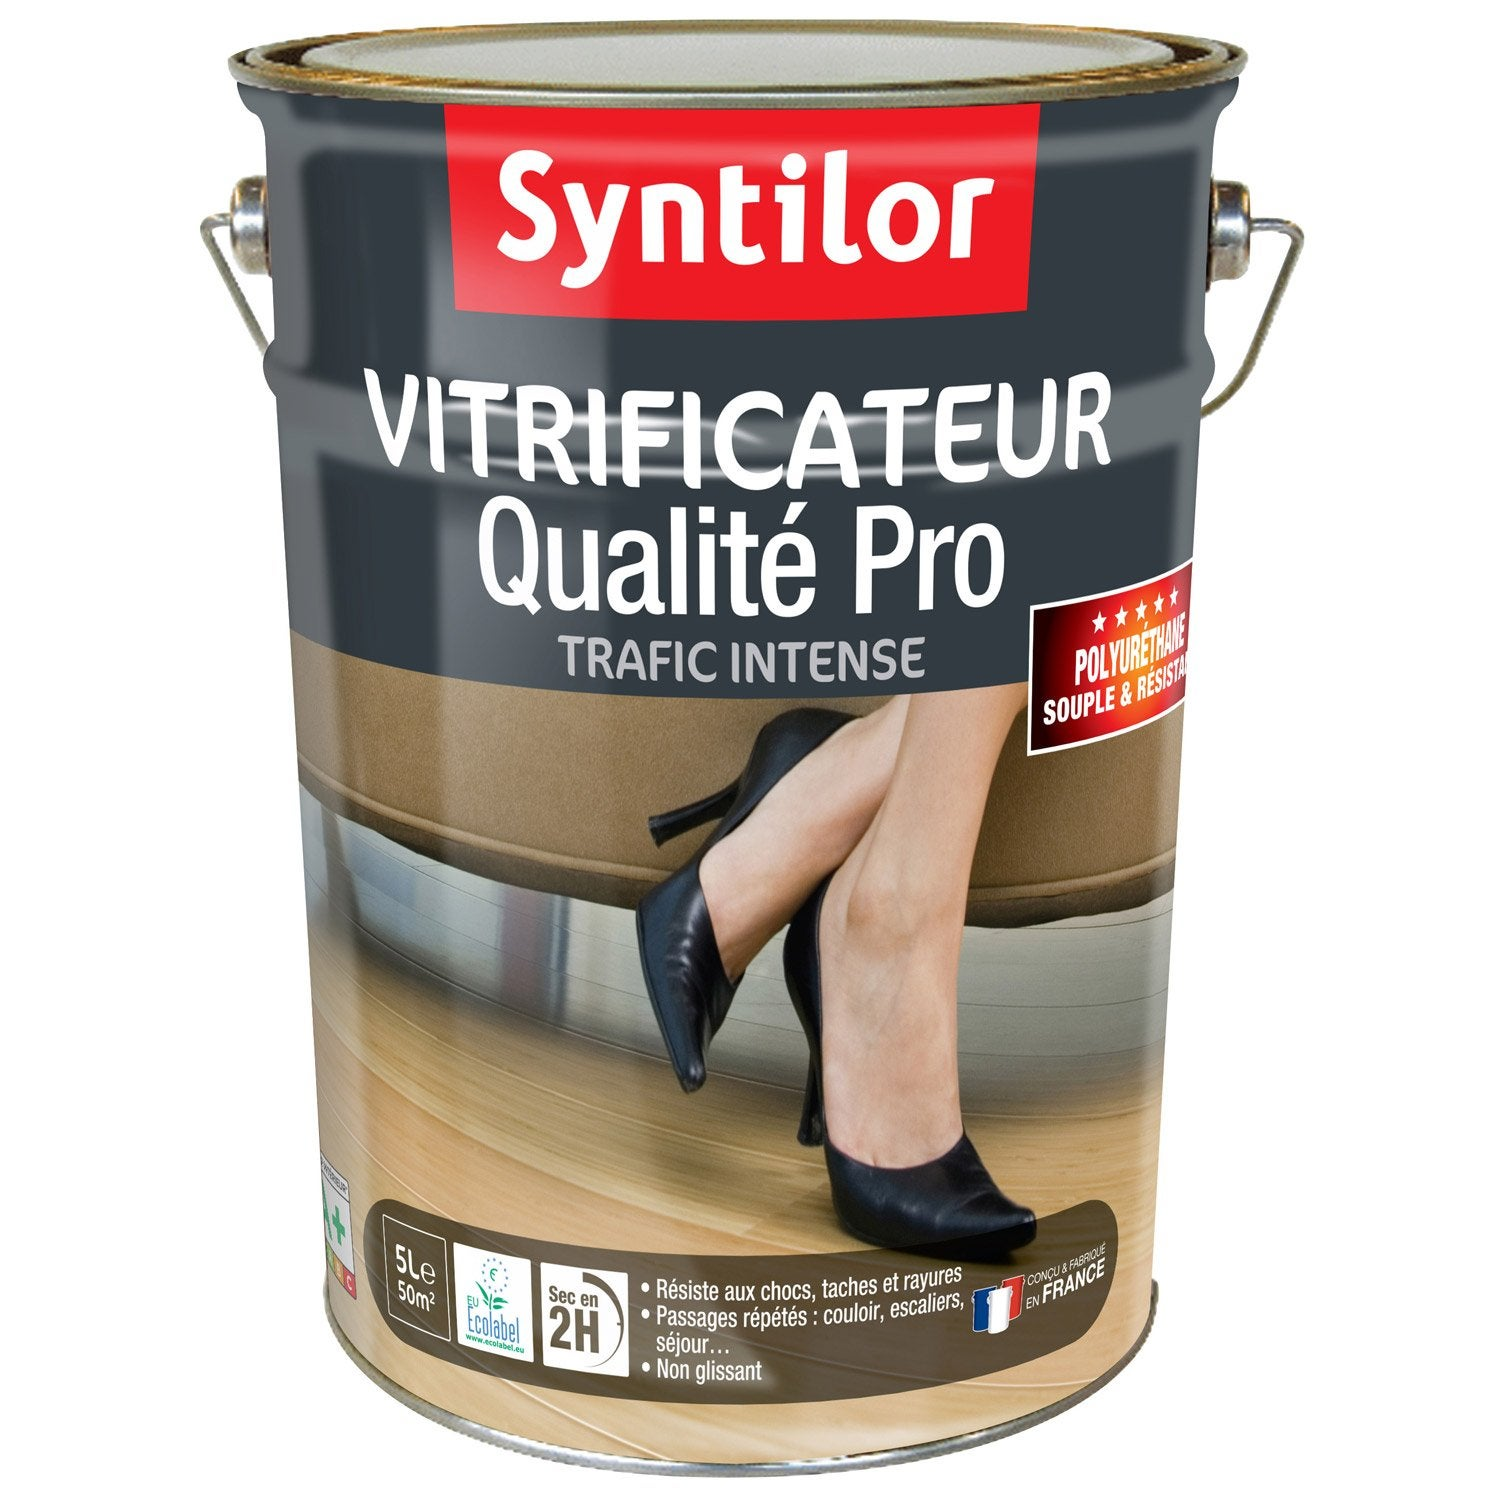 vitrificateur parquet ultra r sistant syntilor naturelle 5 l leroy merlin. Black Bedroom Furniture Sets. Home Design Ideas